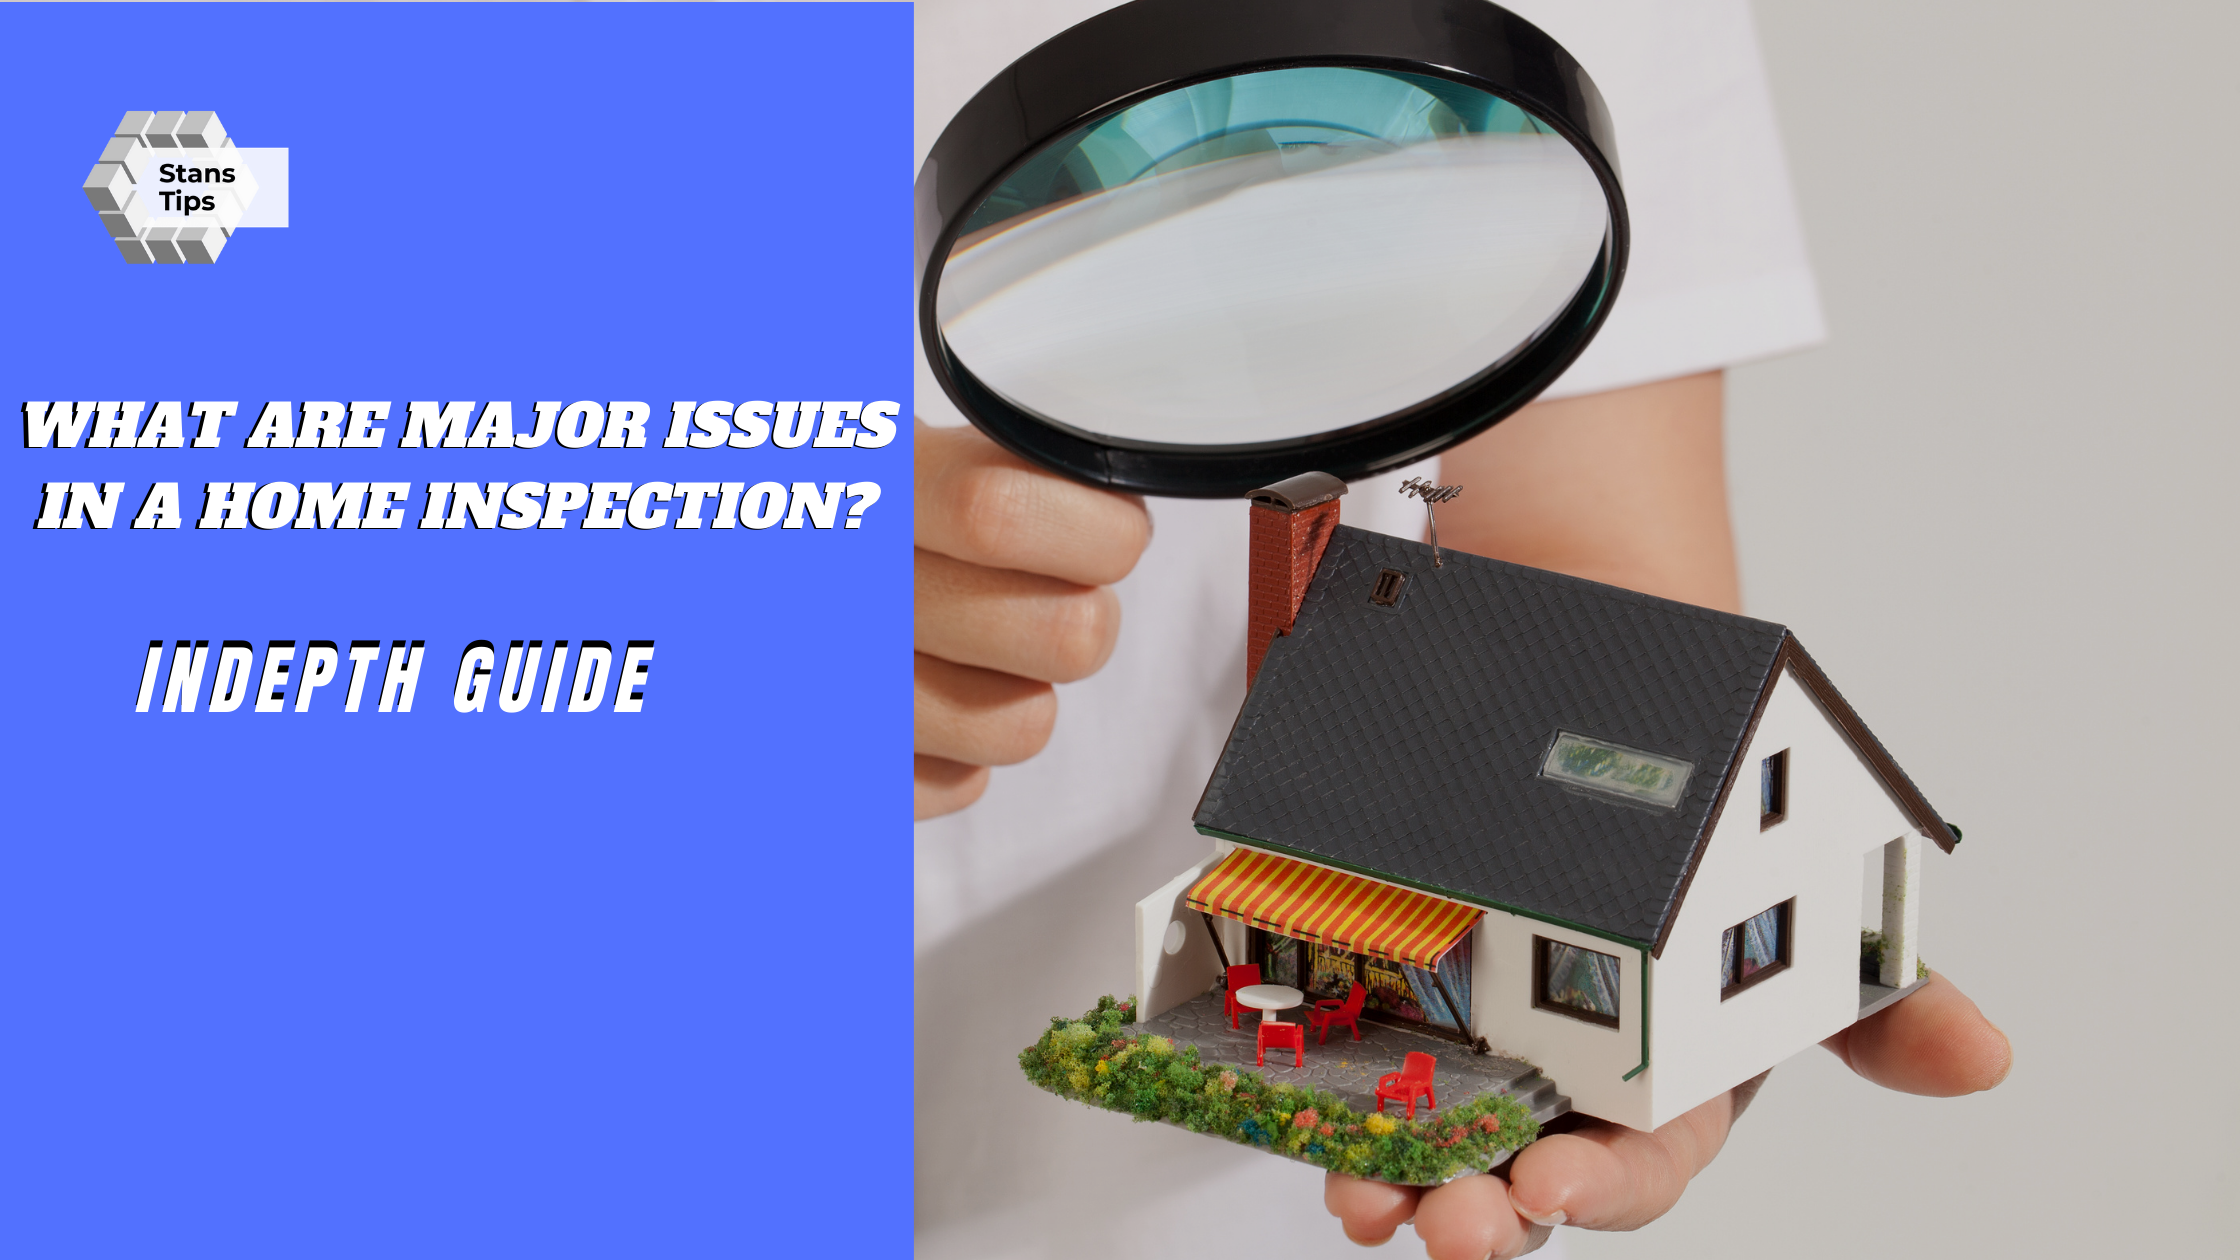 What are major issues in a home inspection